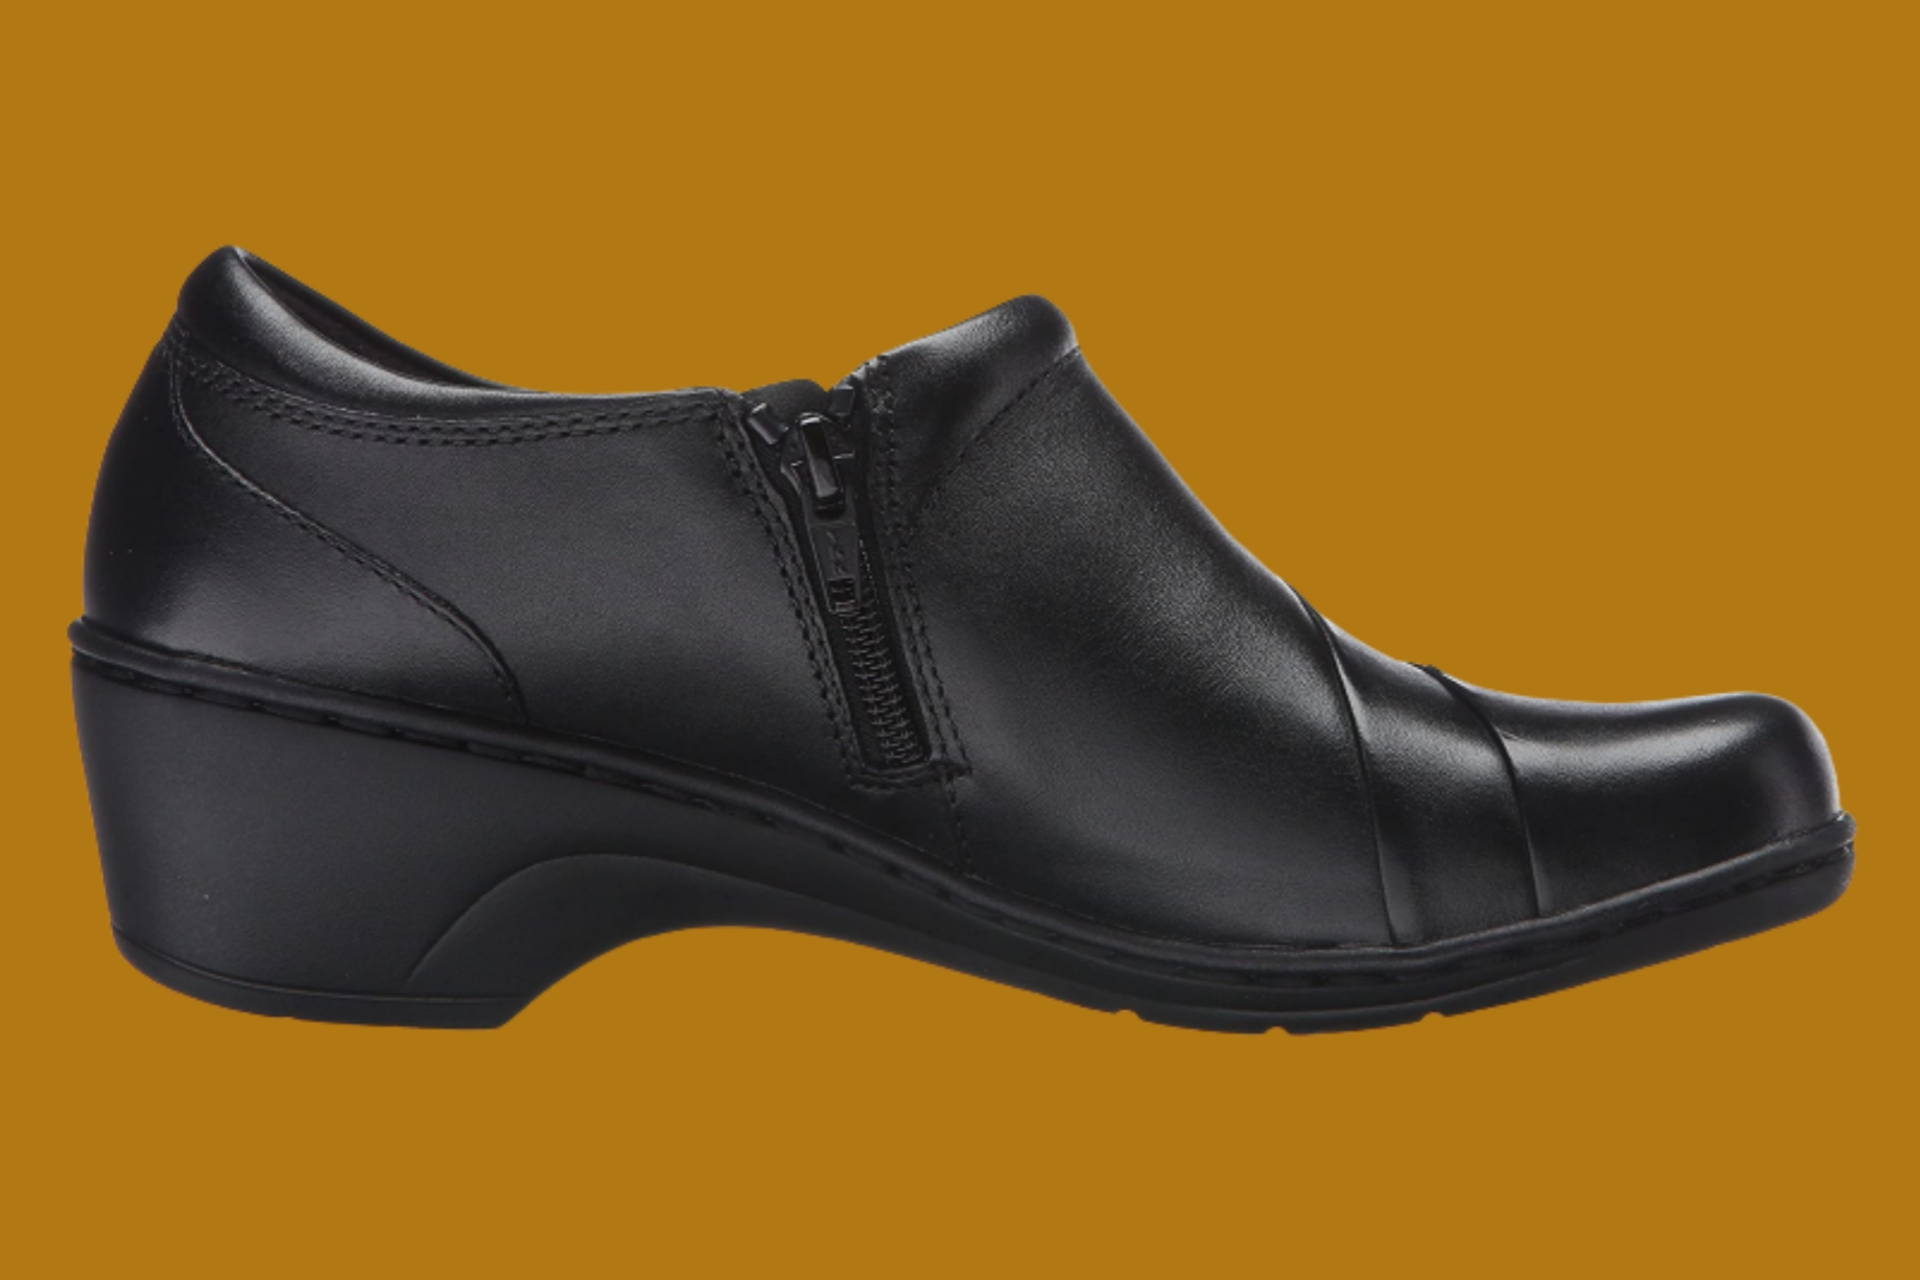 Women's office shoes for plantar fasciitis